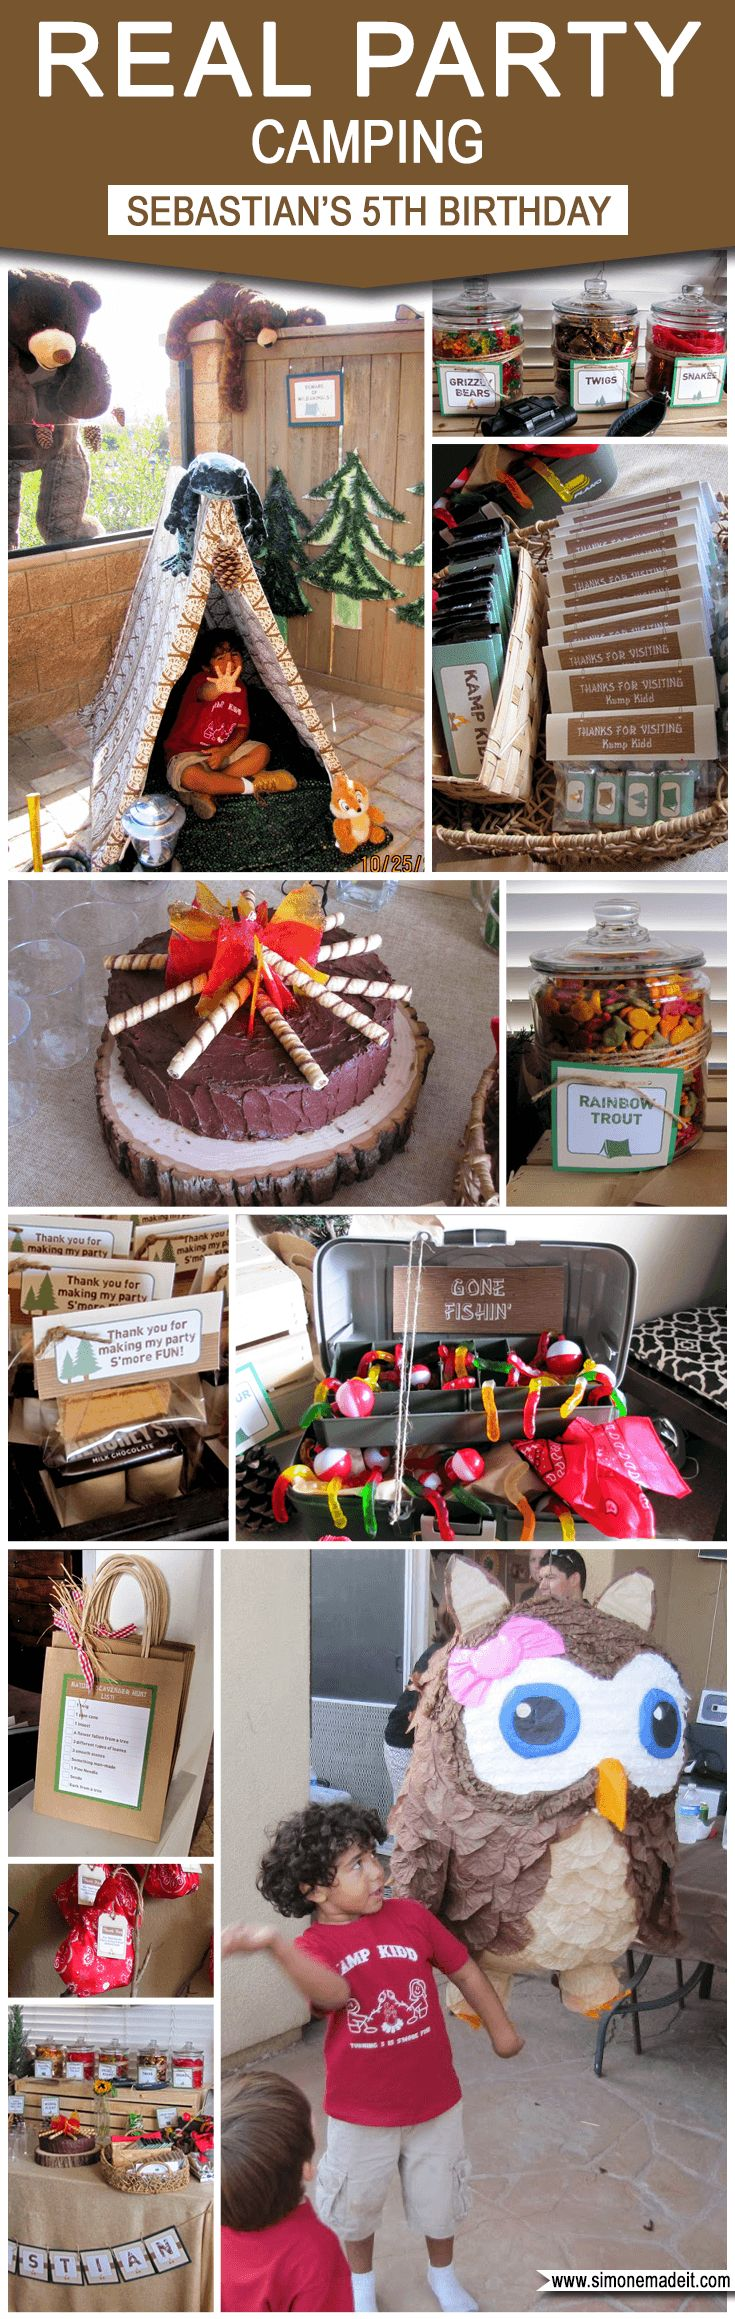 Gmail theme gone - Camping Birthday Party Theme